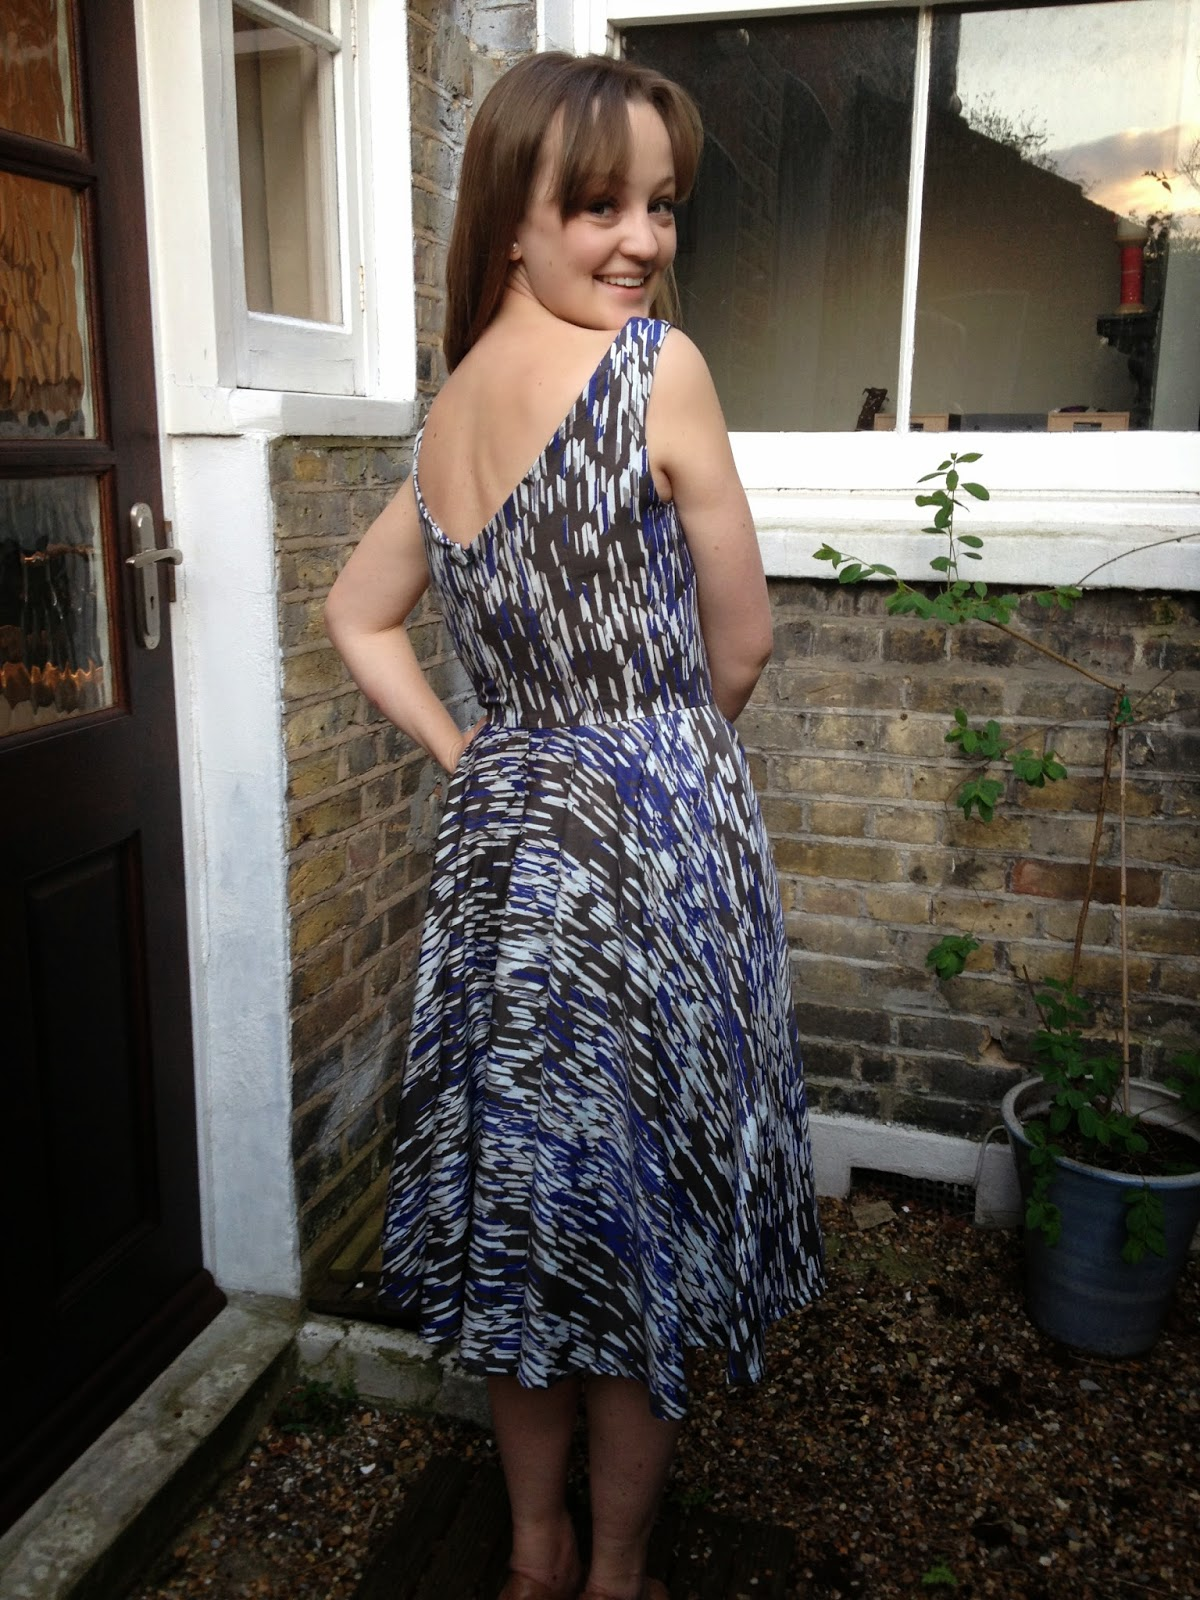 Diary of a Chainstitcher: Pattern Testing the Betty Dress Sewing Pattern from Sew Over It